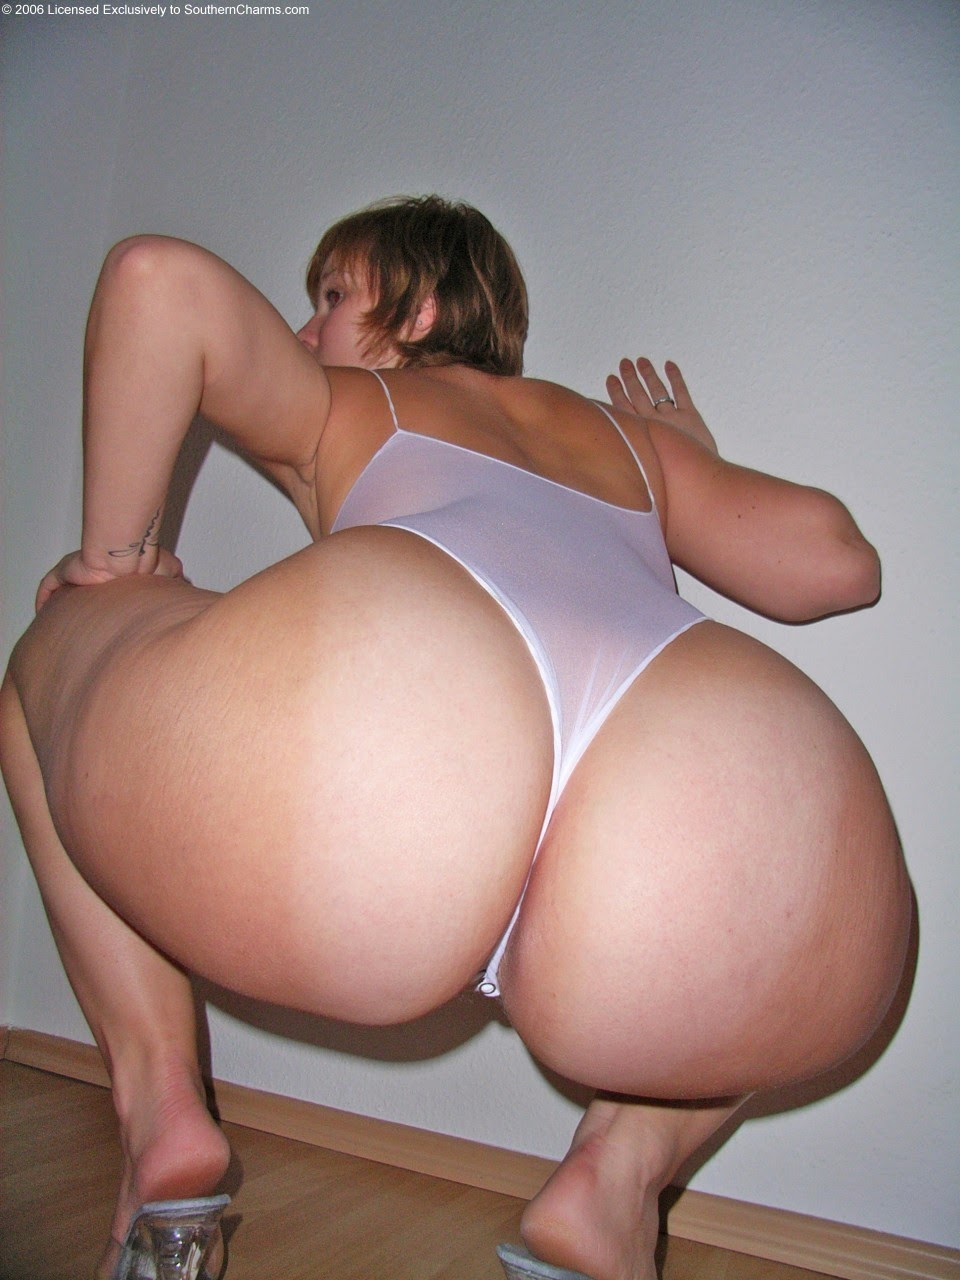 Serious? Sexy hip pawg nude from behind